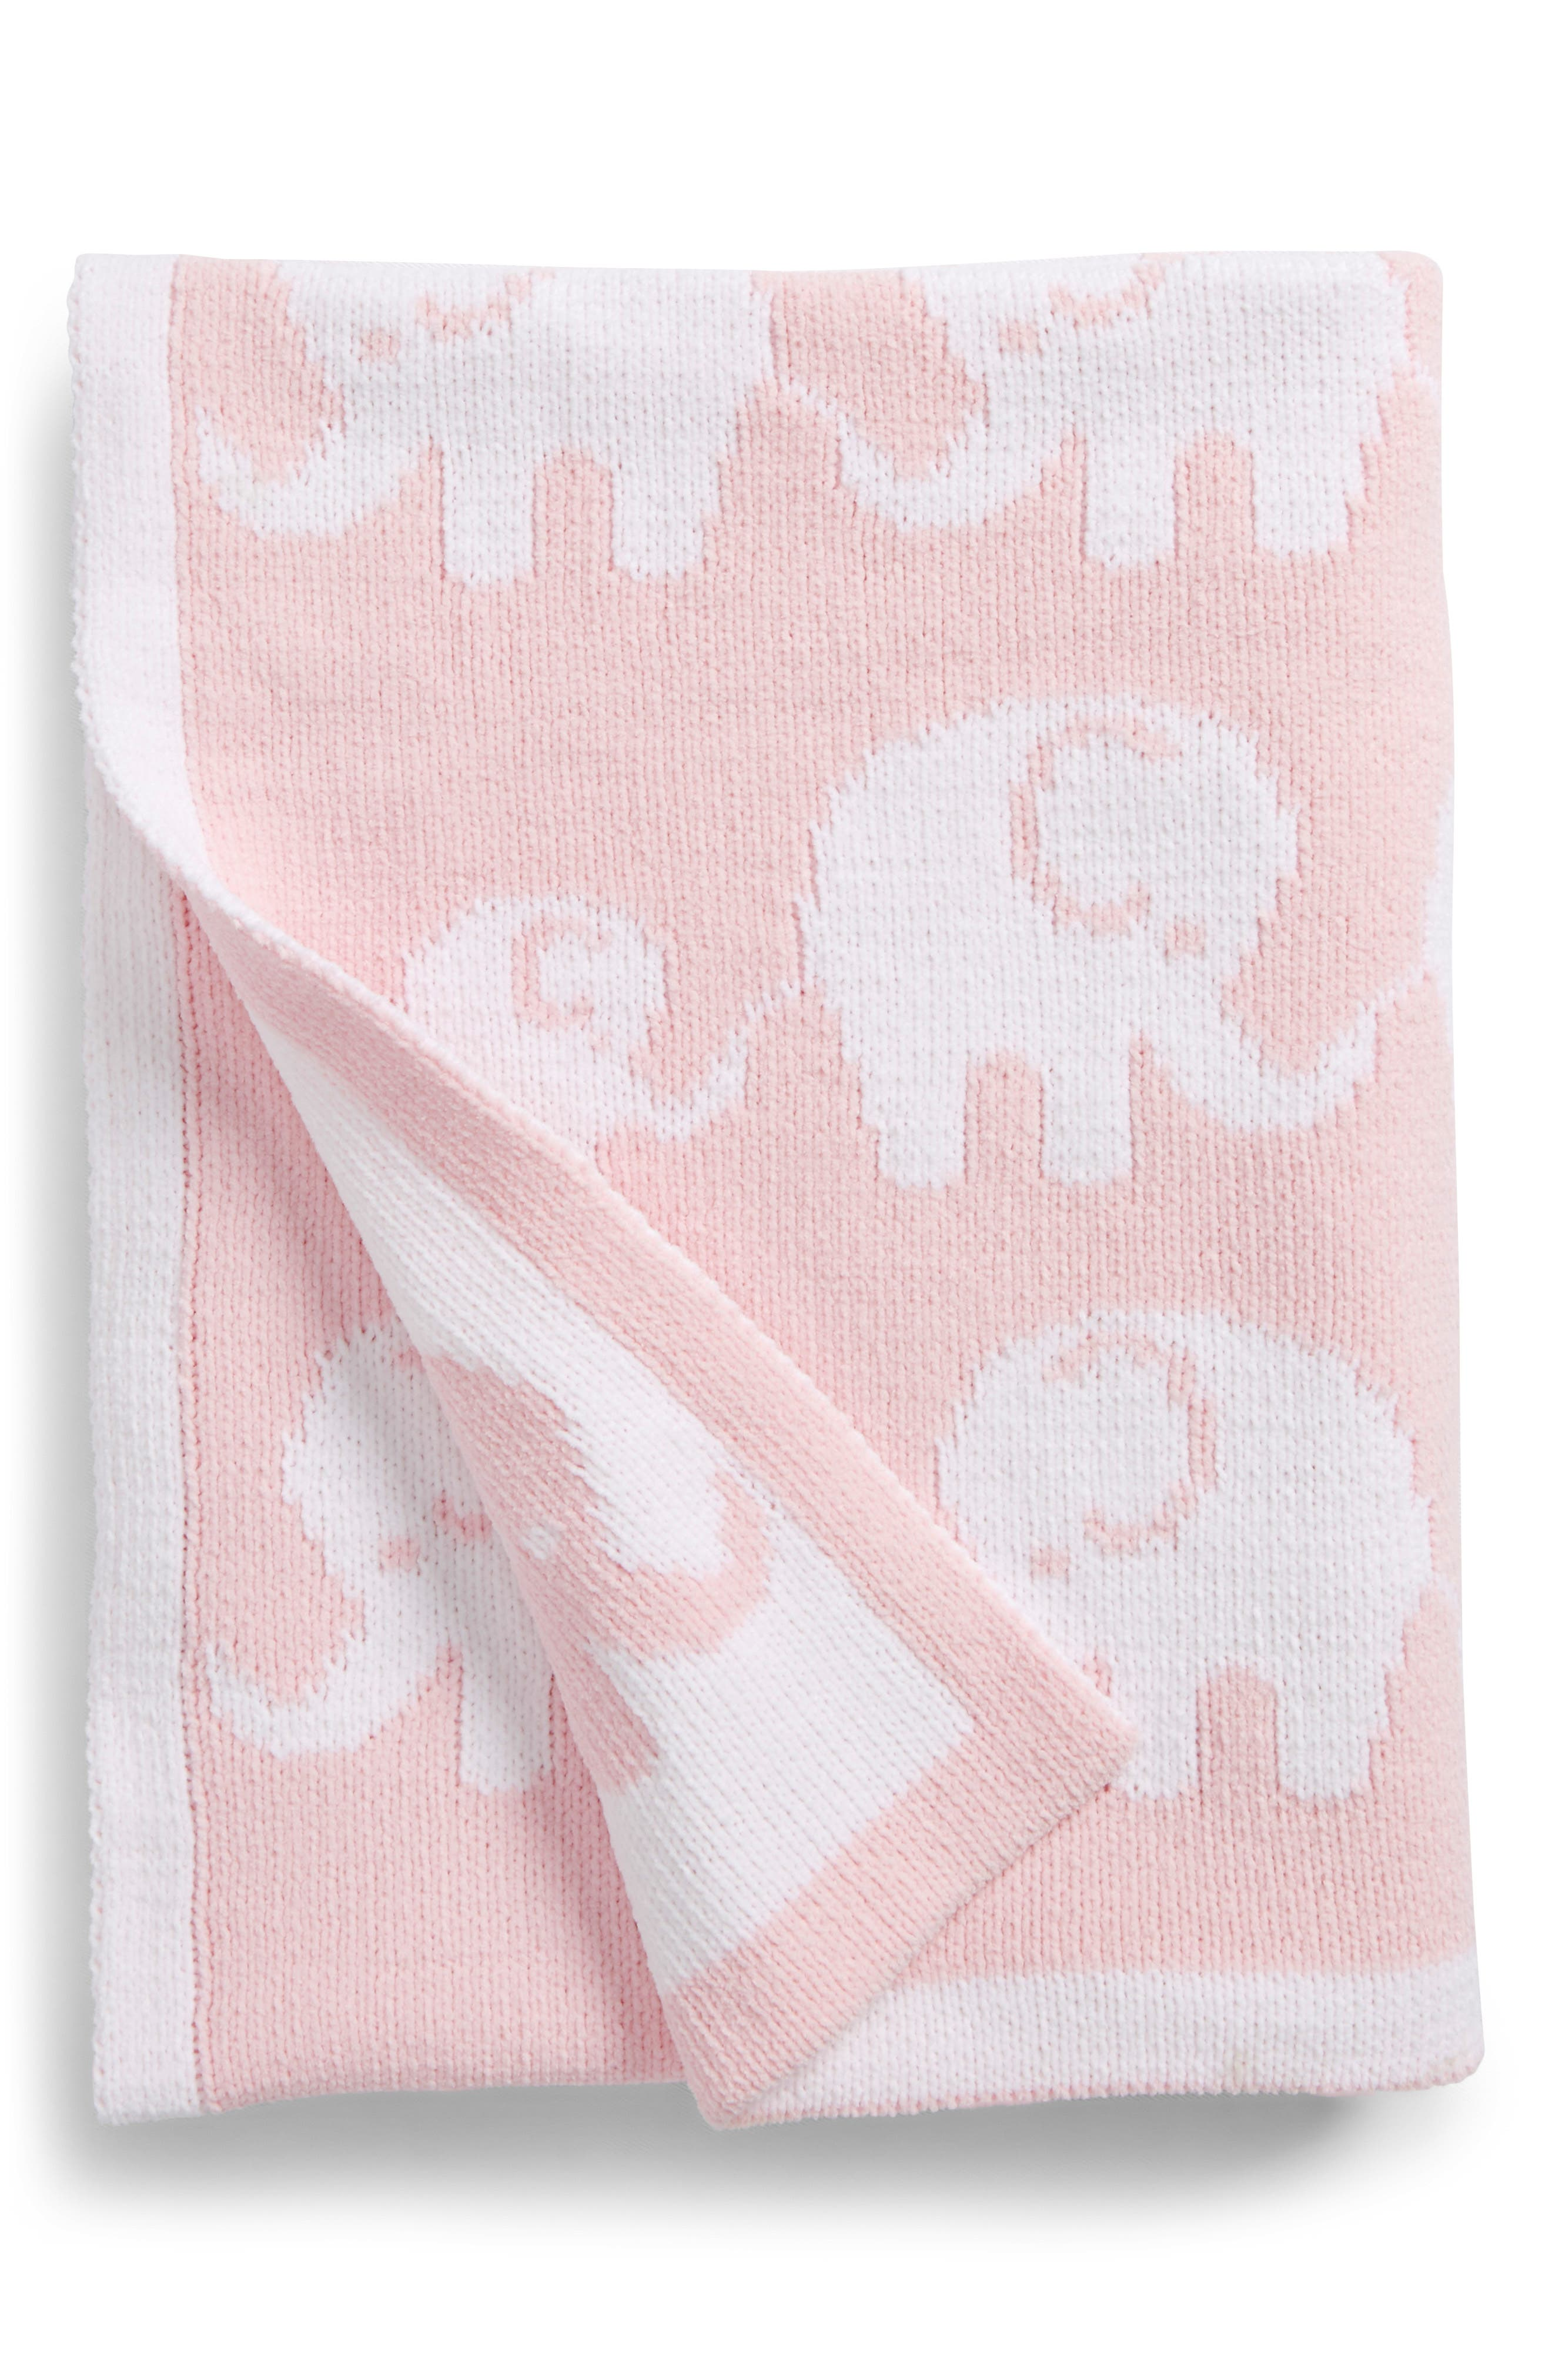 Chenille Blanket,                             Main thumbnail 1, color,                             Pink Baby Elephants